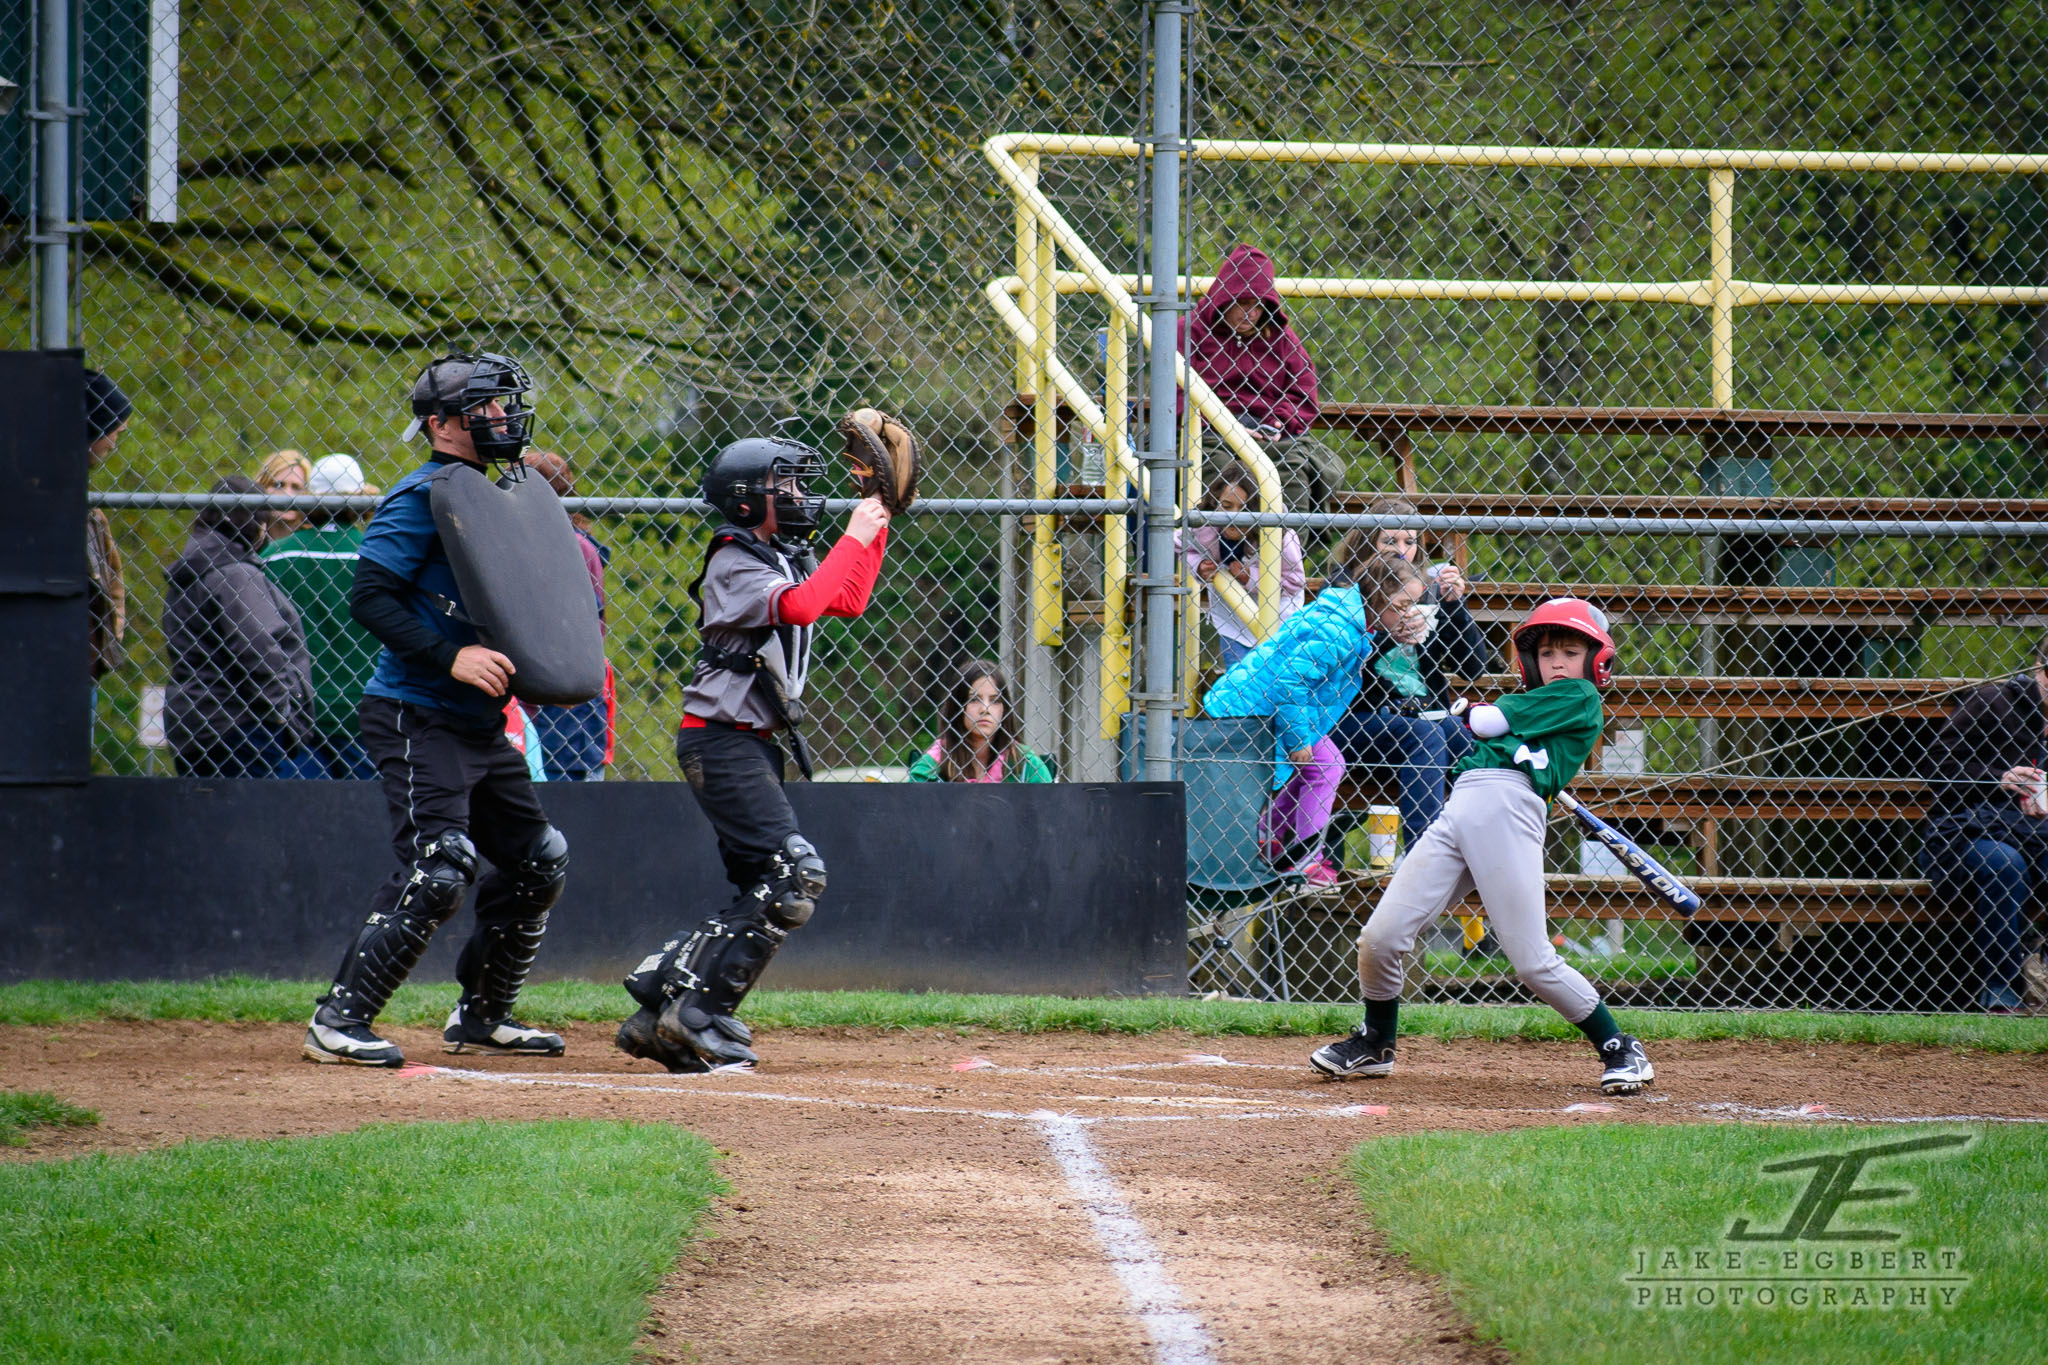 FB - 2014-04-05 - GreenSox - 19438.jpg